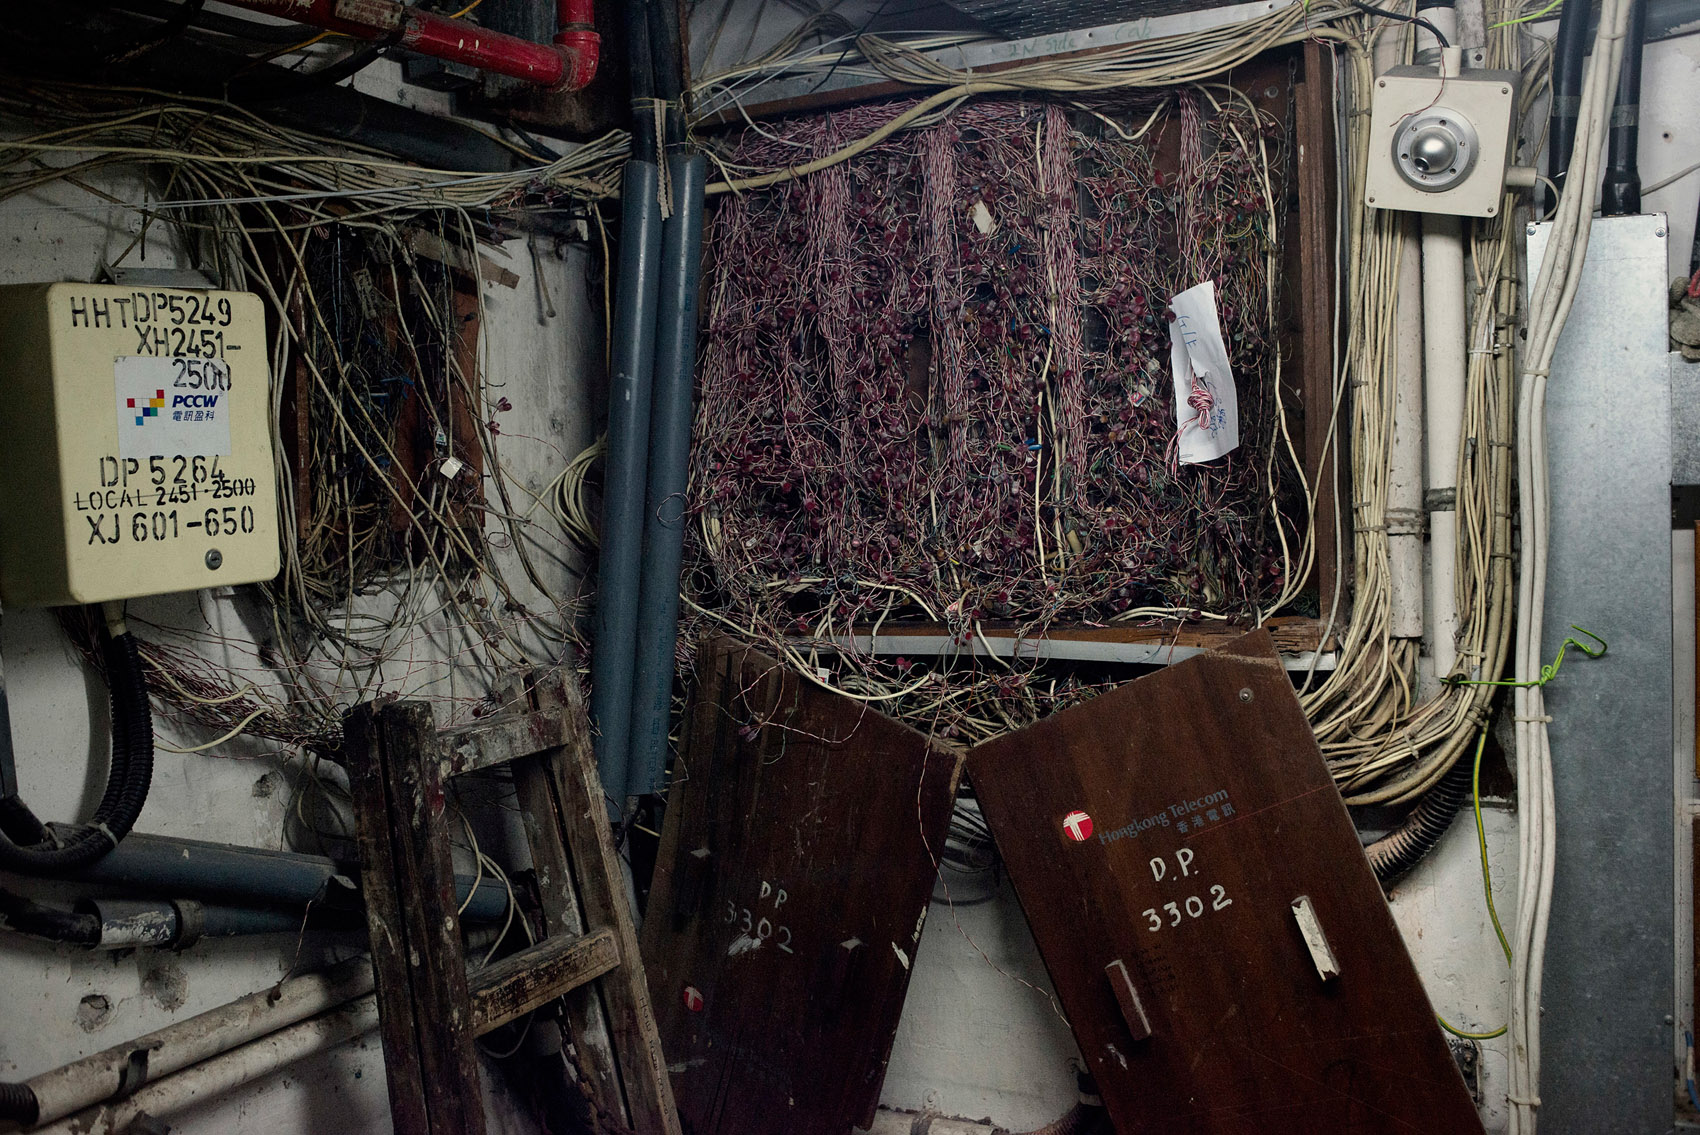 Phone and electric cables in the open in a staircase of the Chungking Mansions.